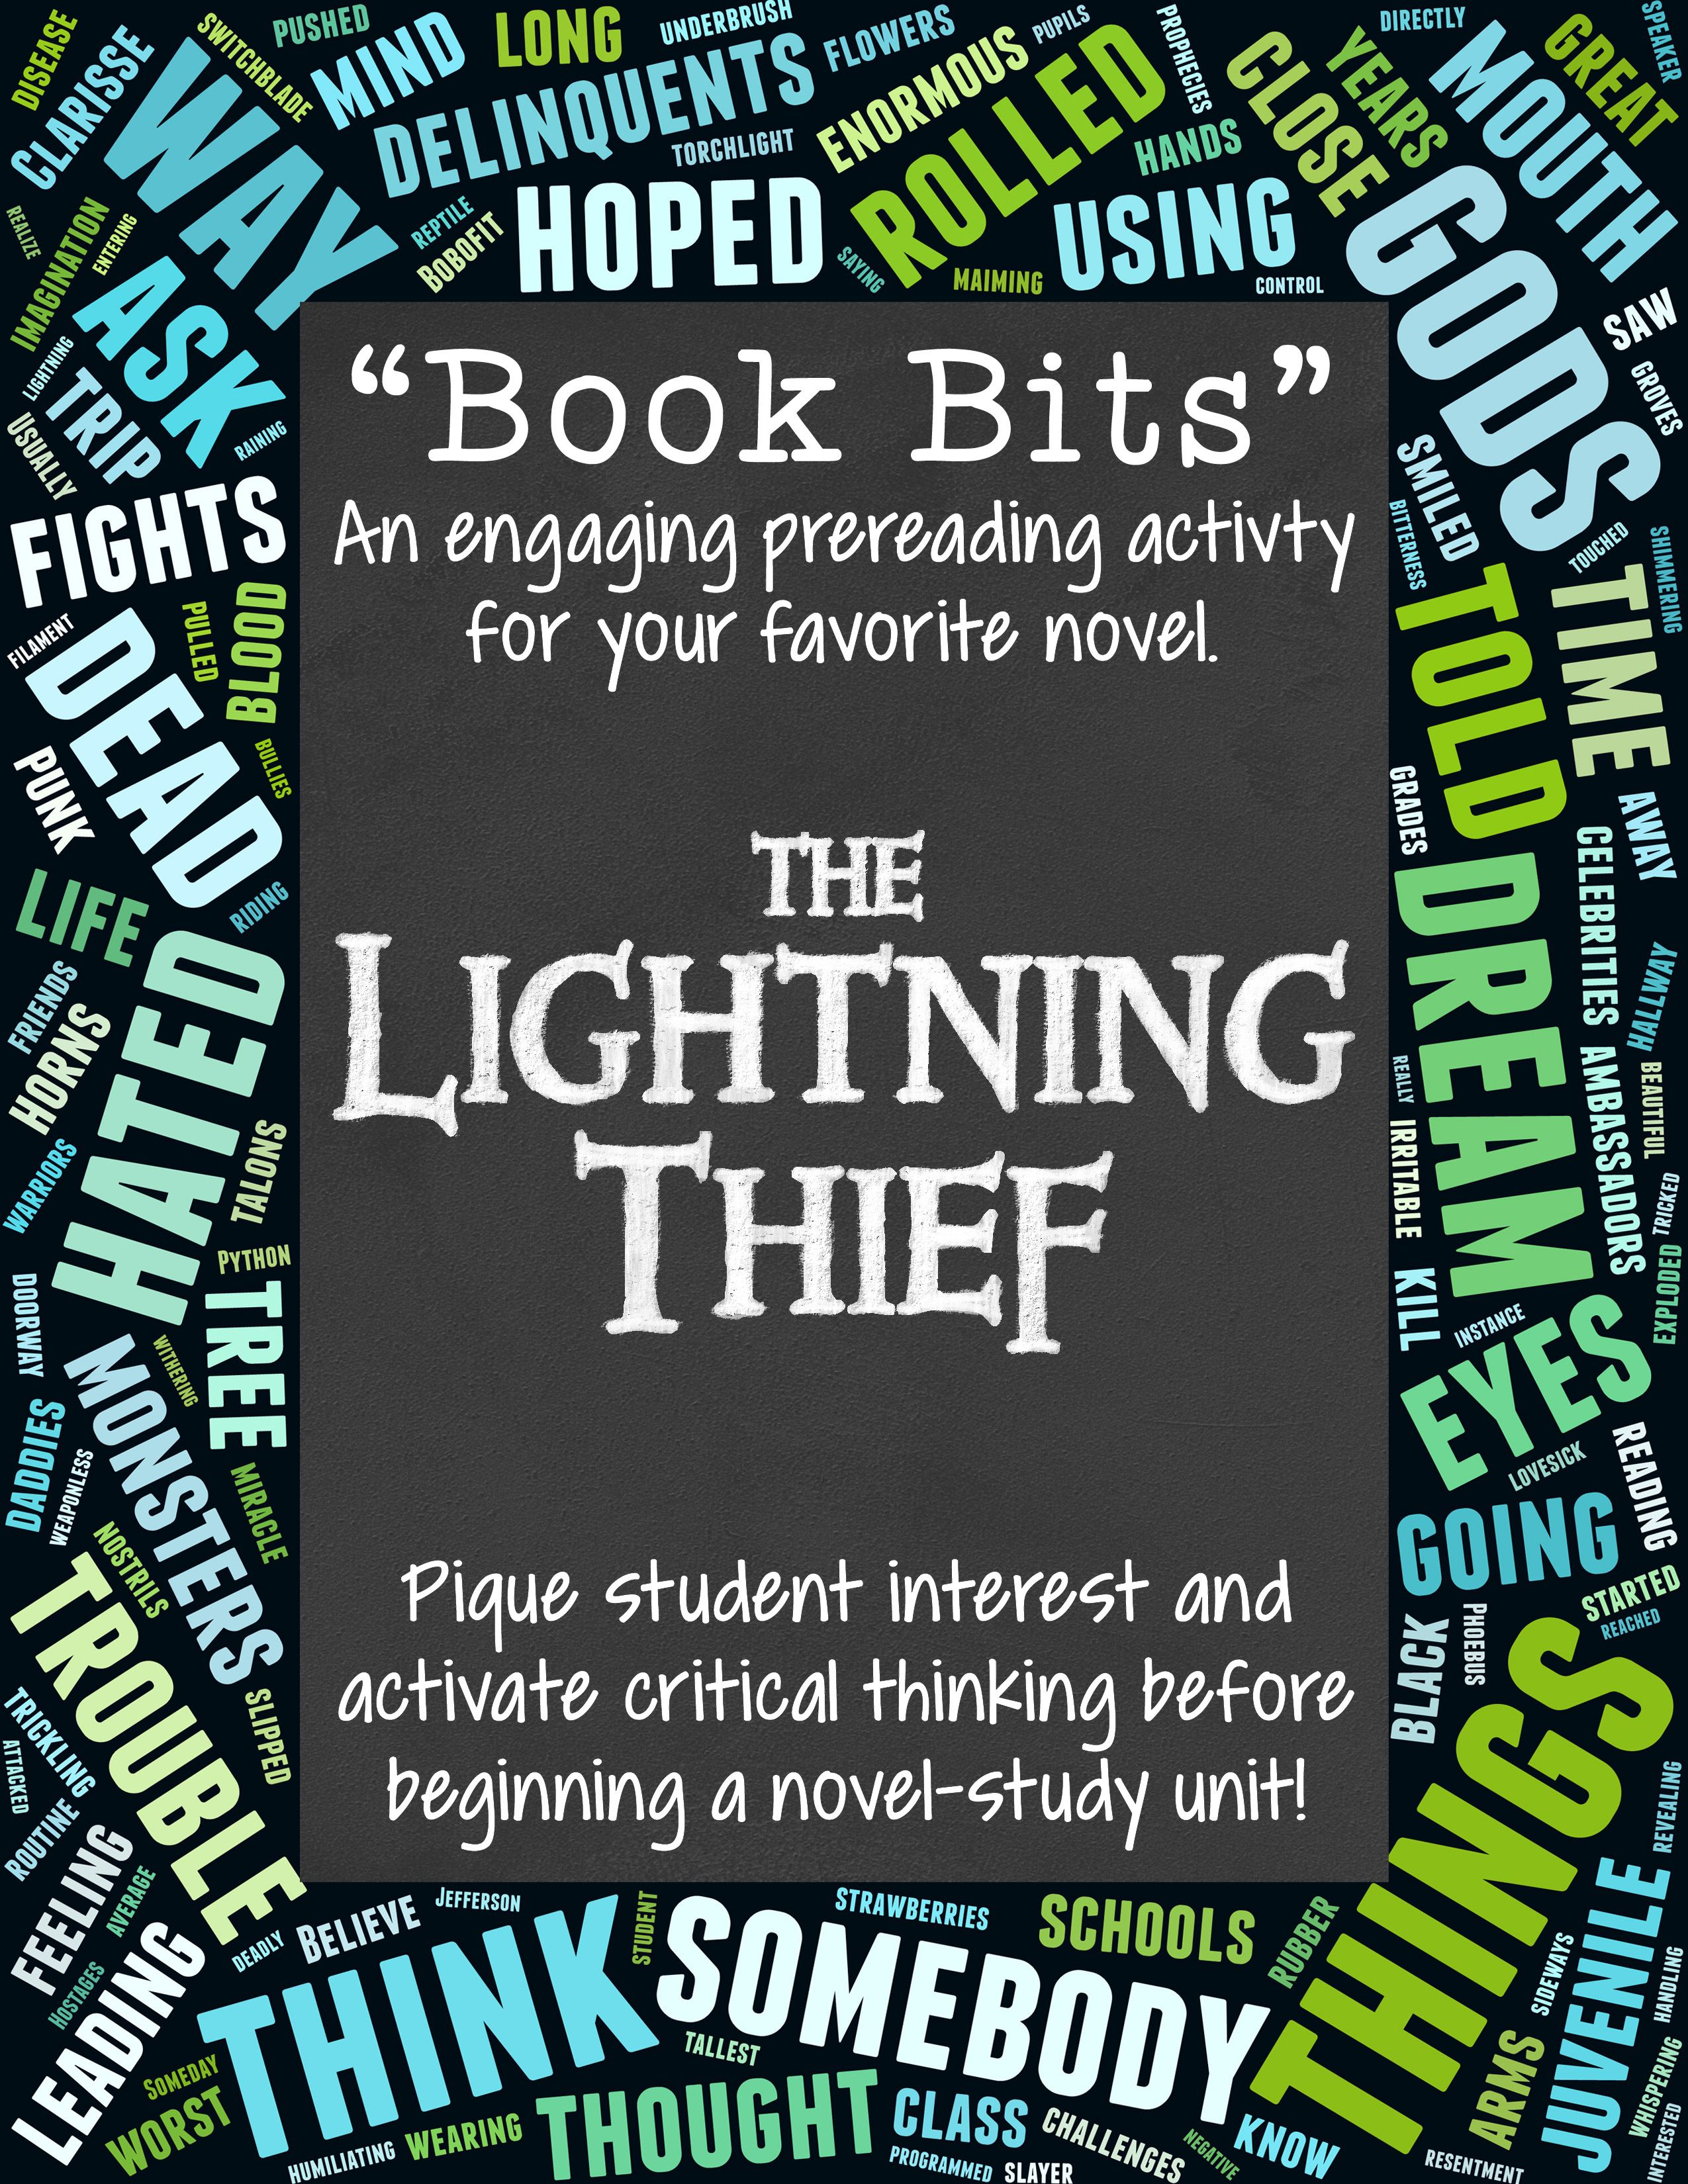 Book Bits A Fun Pre Reading Activity For The Lightning Thief